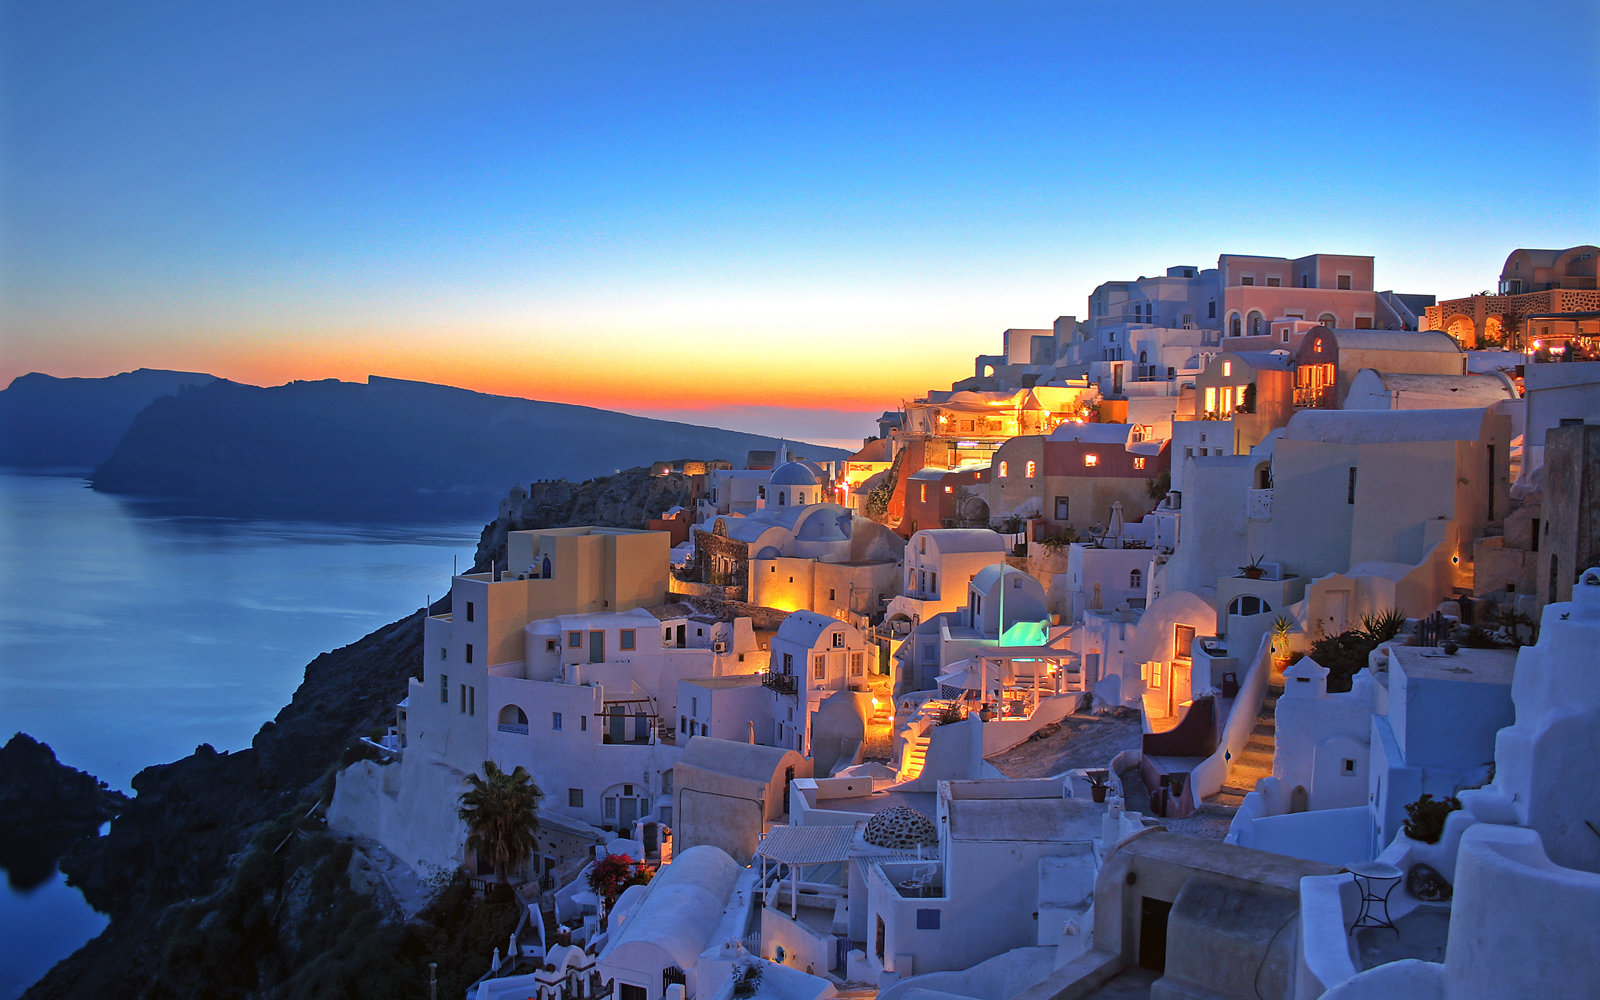 Sunset in Santorini.